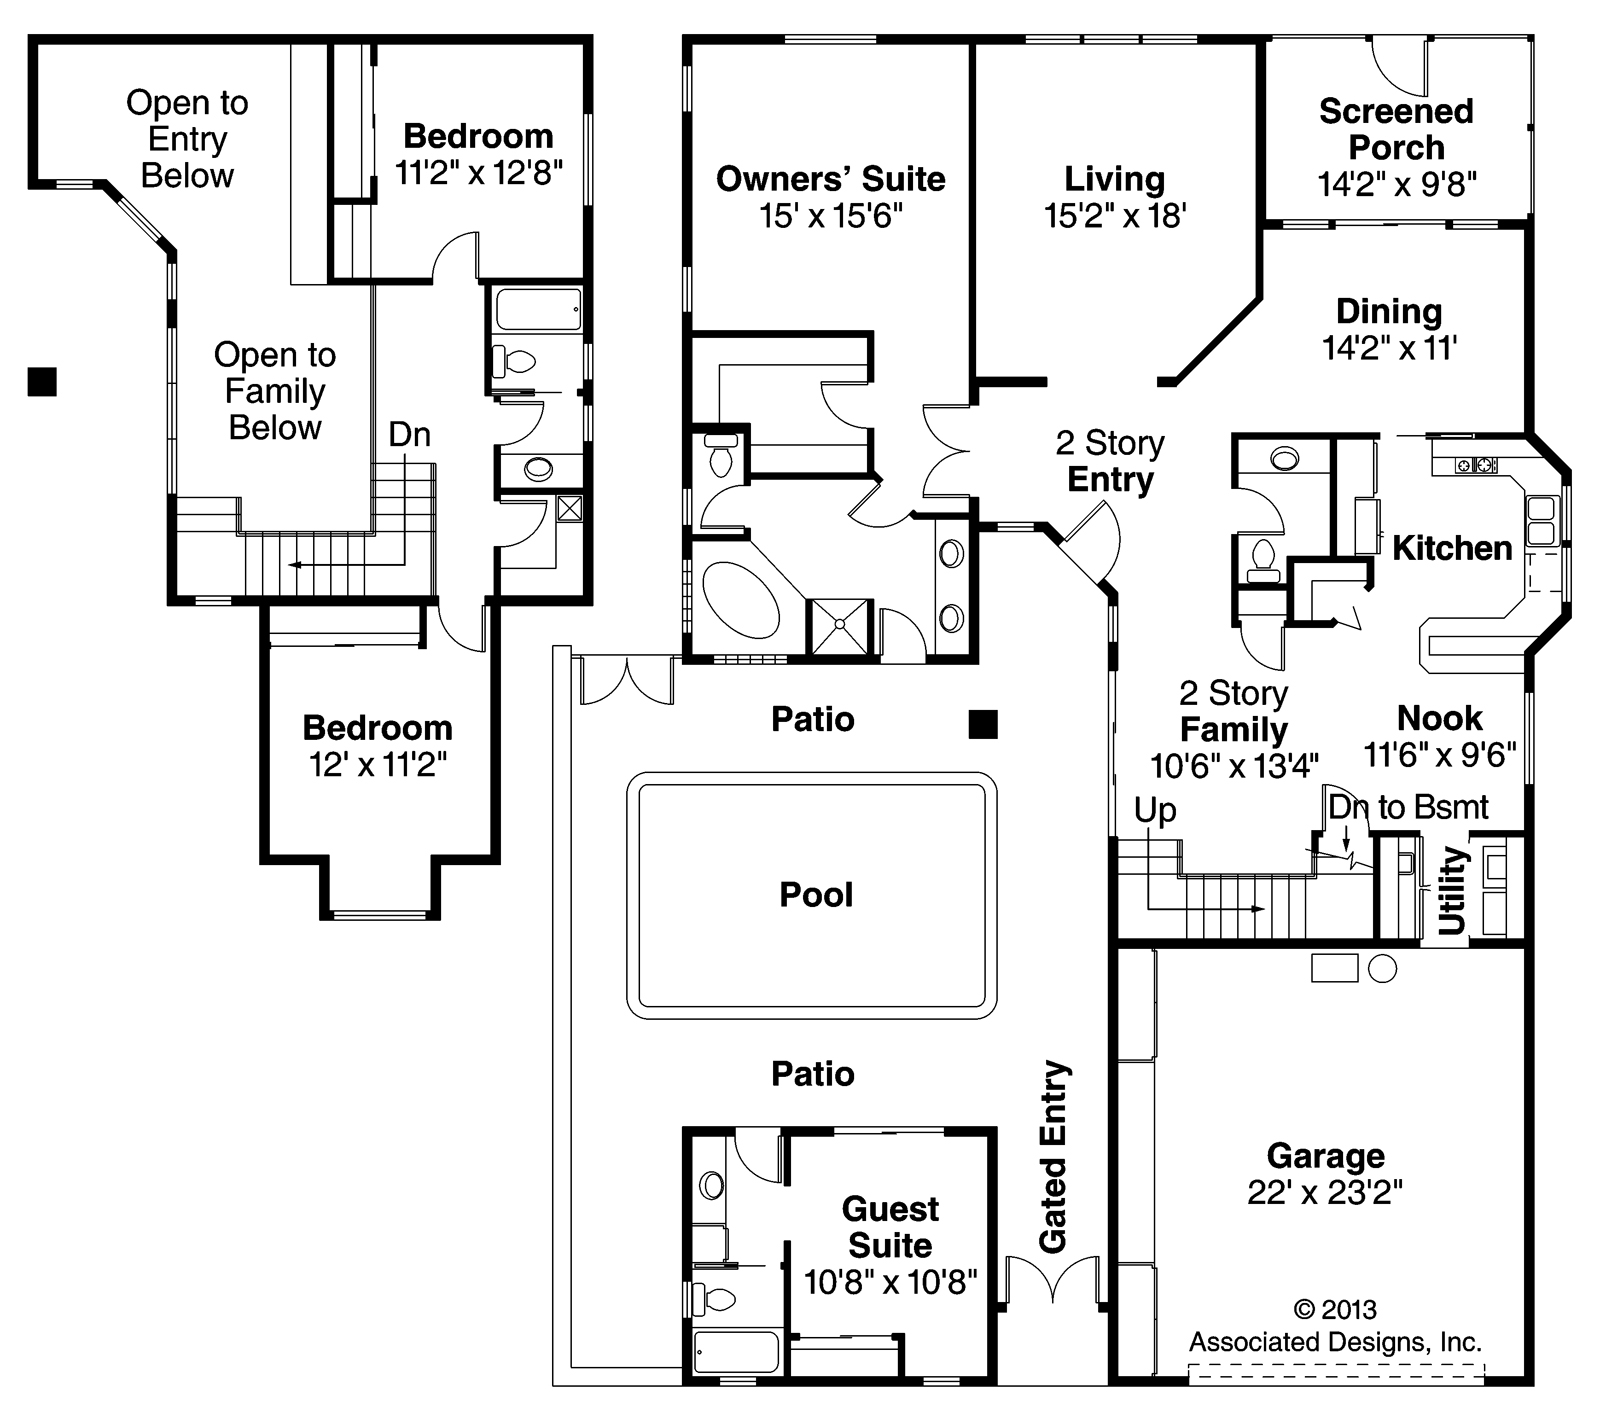 Mediterranean Home Floor Plans: Mediterranean House Plans